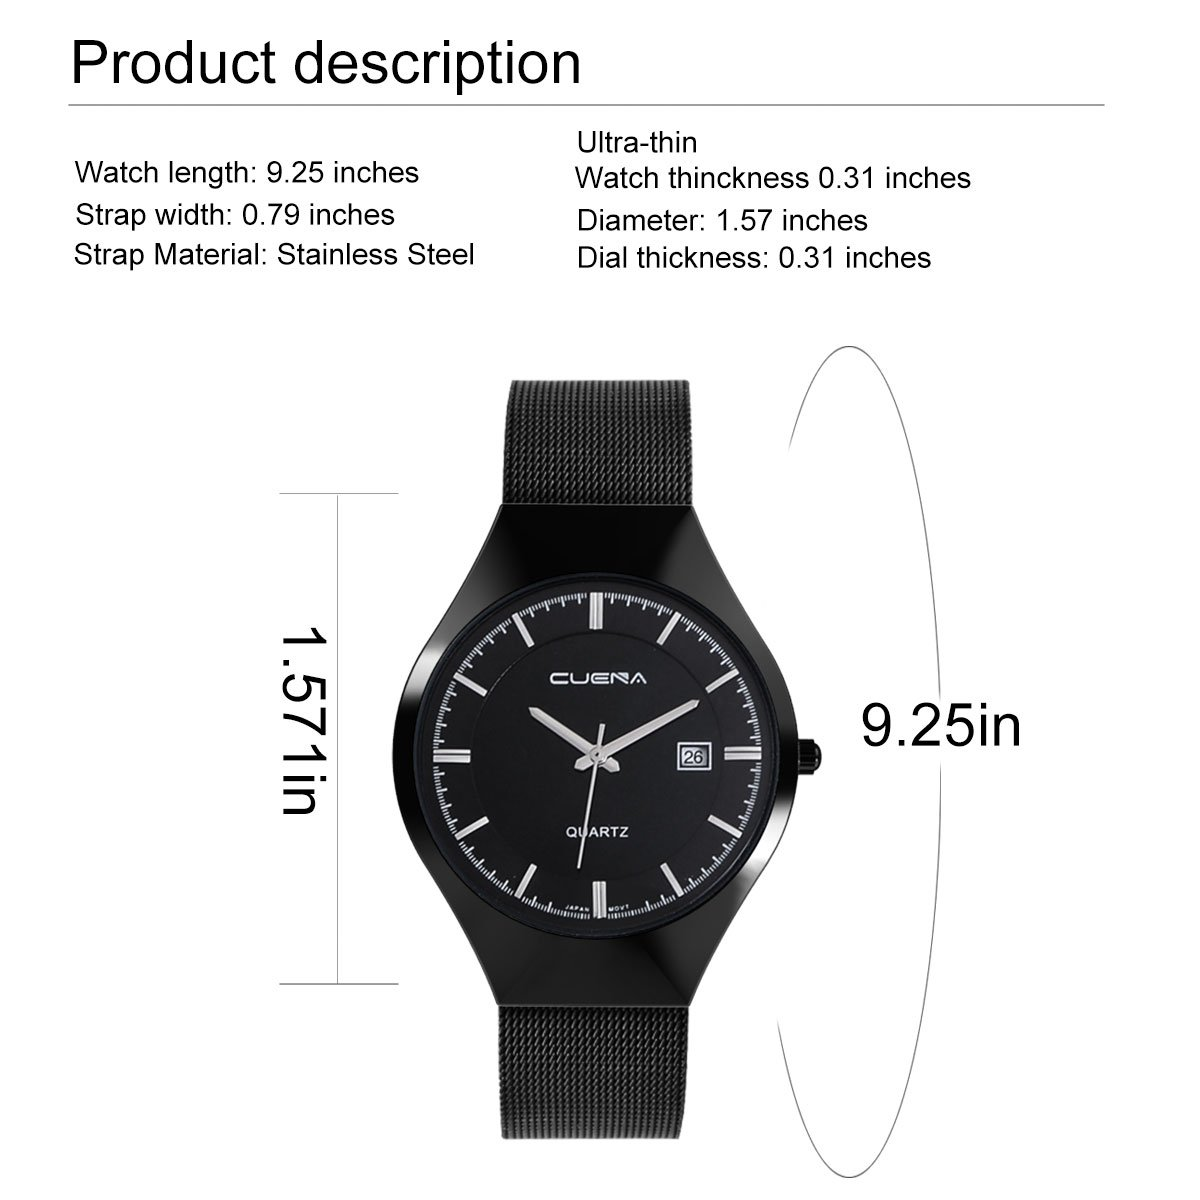 Wrist Watch for Men, Ultra-Thin Casual Business Stainless Steel Men\'s Watch with Date Display by CUENA